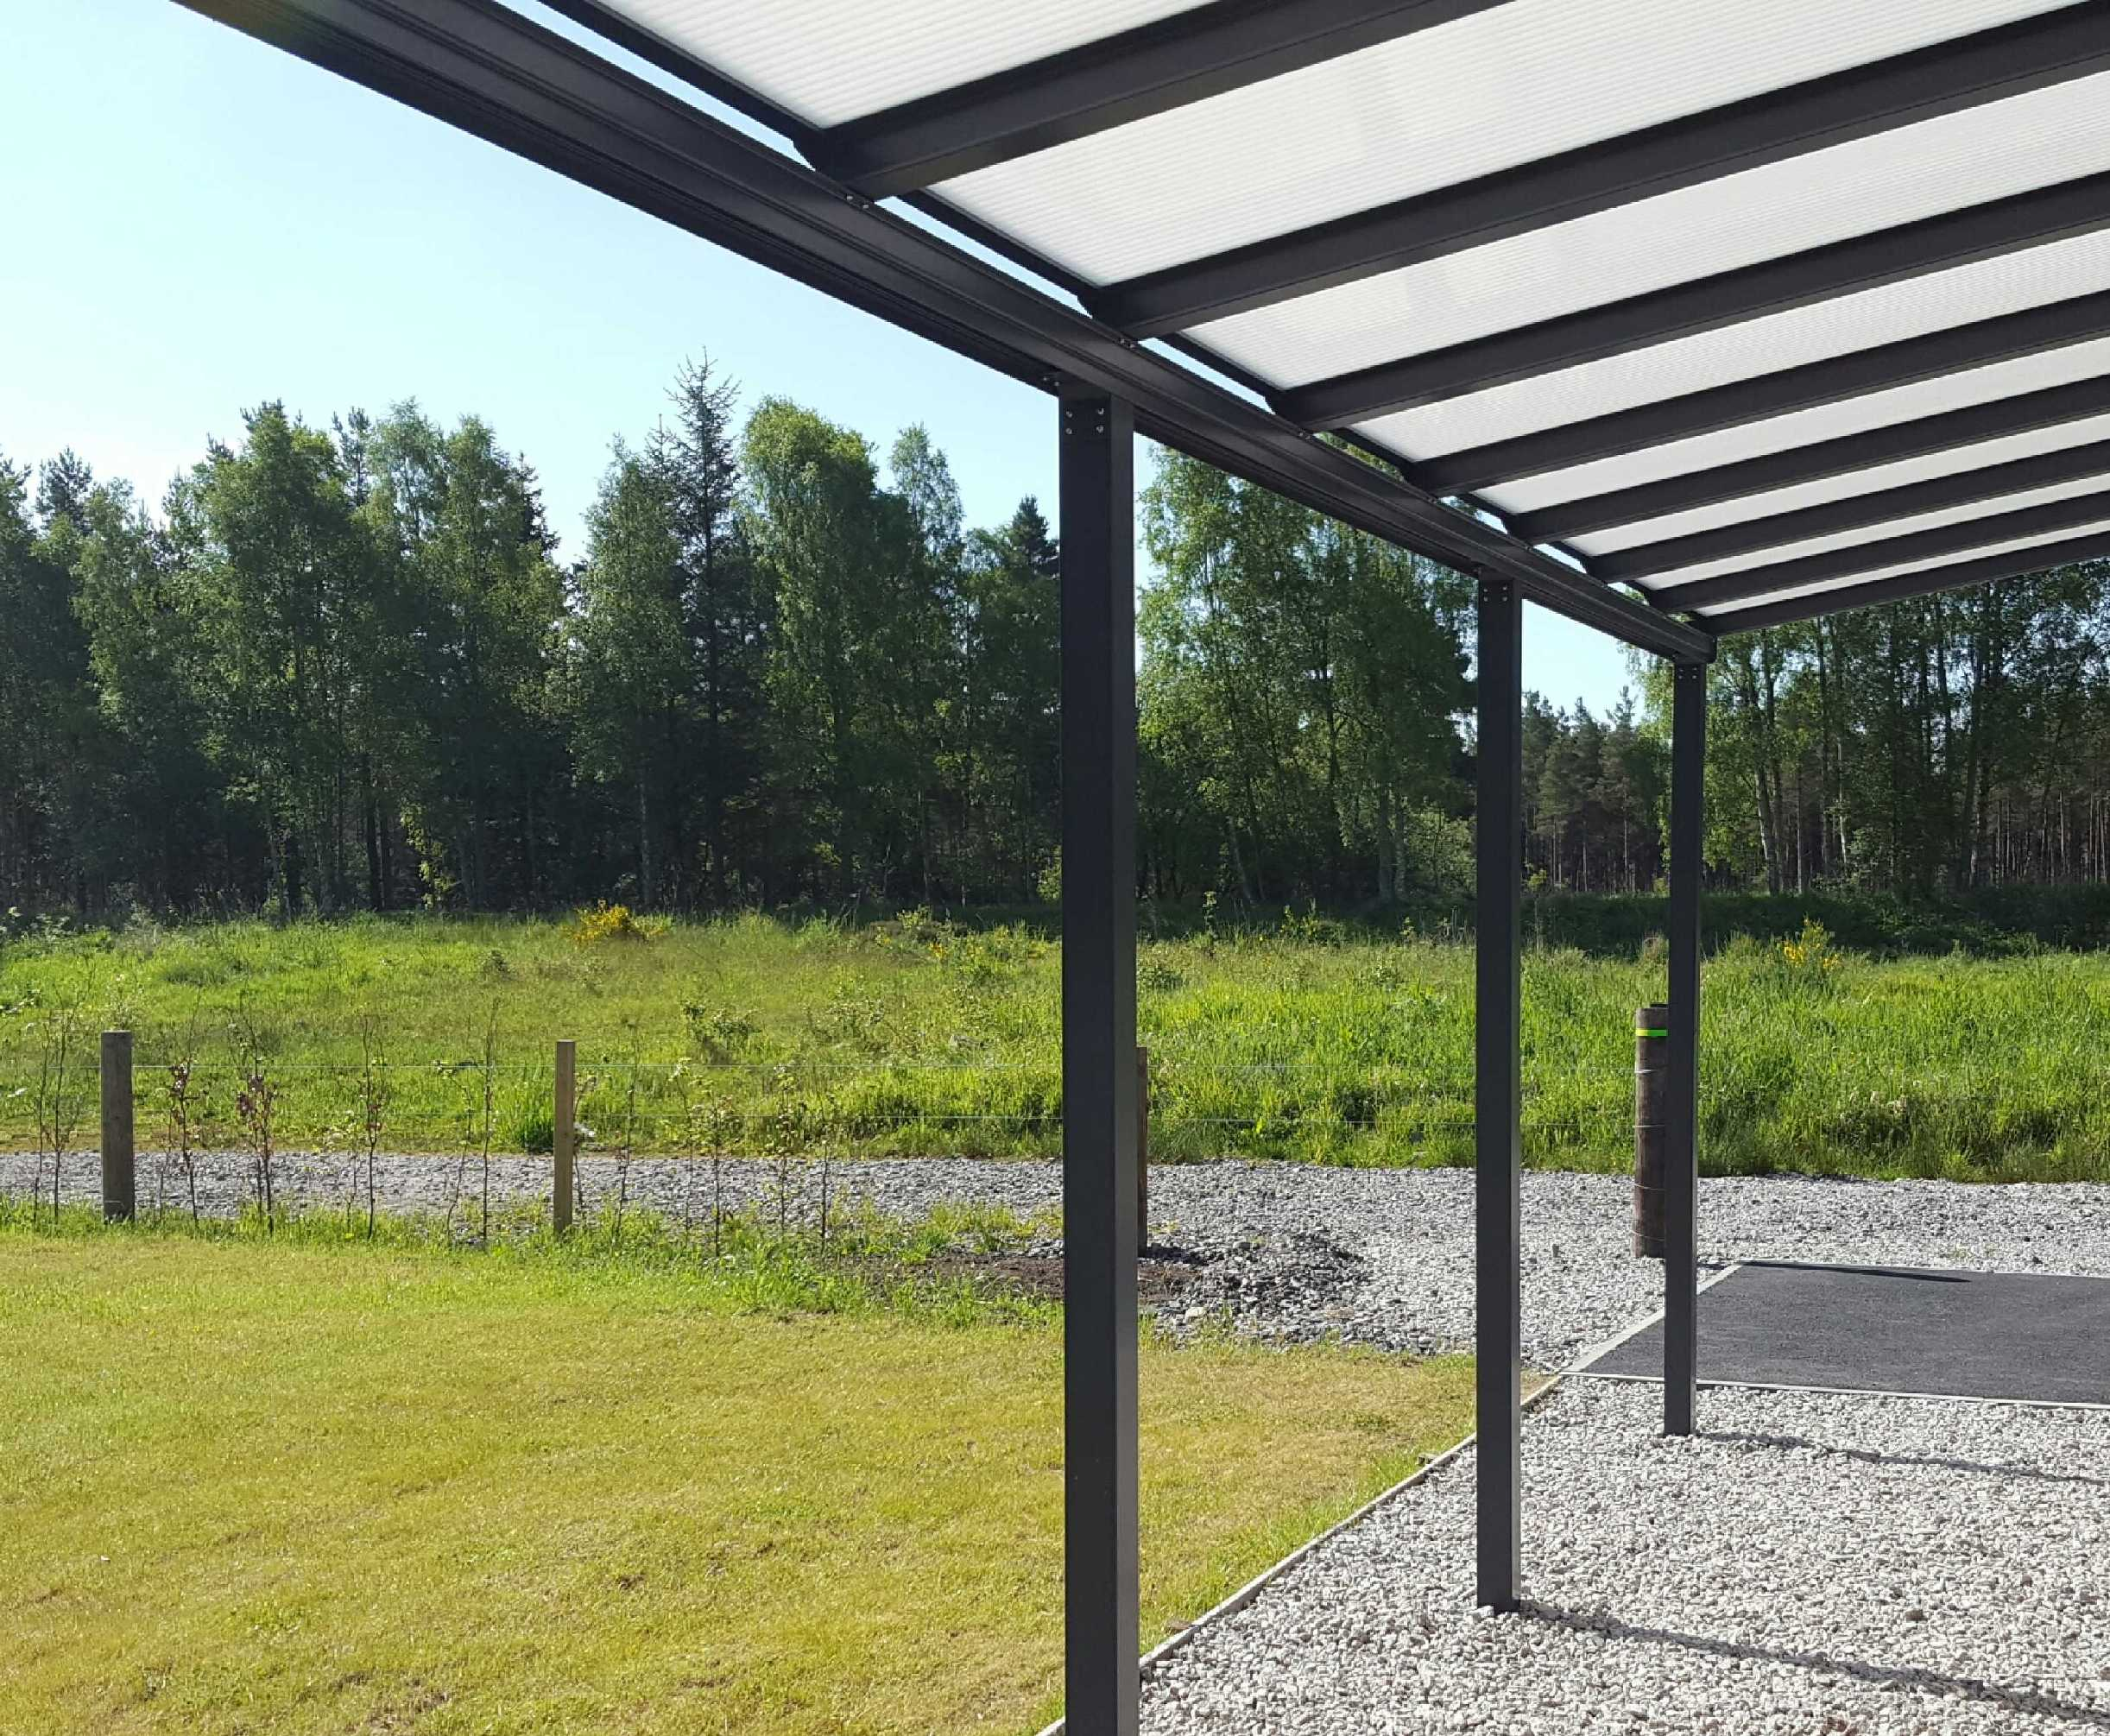 Omega Smart Lean-To Canopy, Anthracite Grey, 6mm Glass Clear Plate Polycarbonate Glazing - 9.8m (W) x 3.0m (P), (5) Supporting Posts